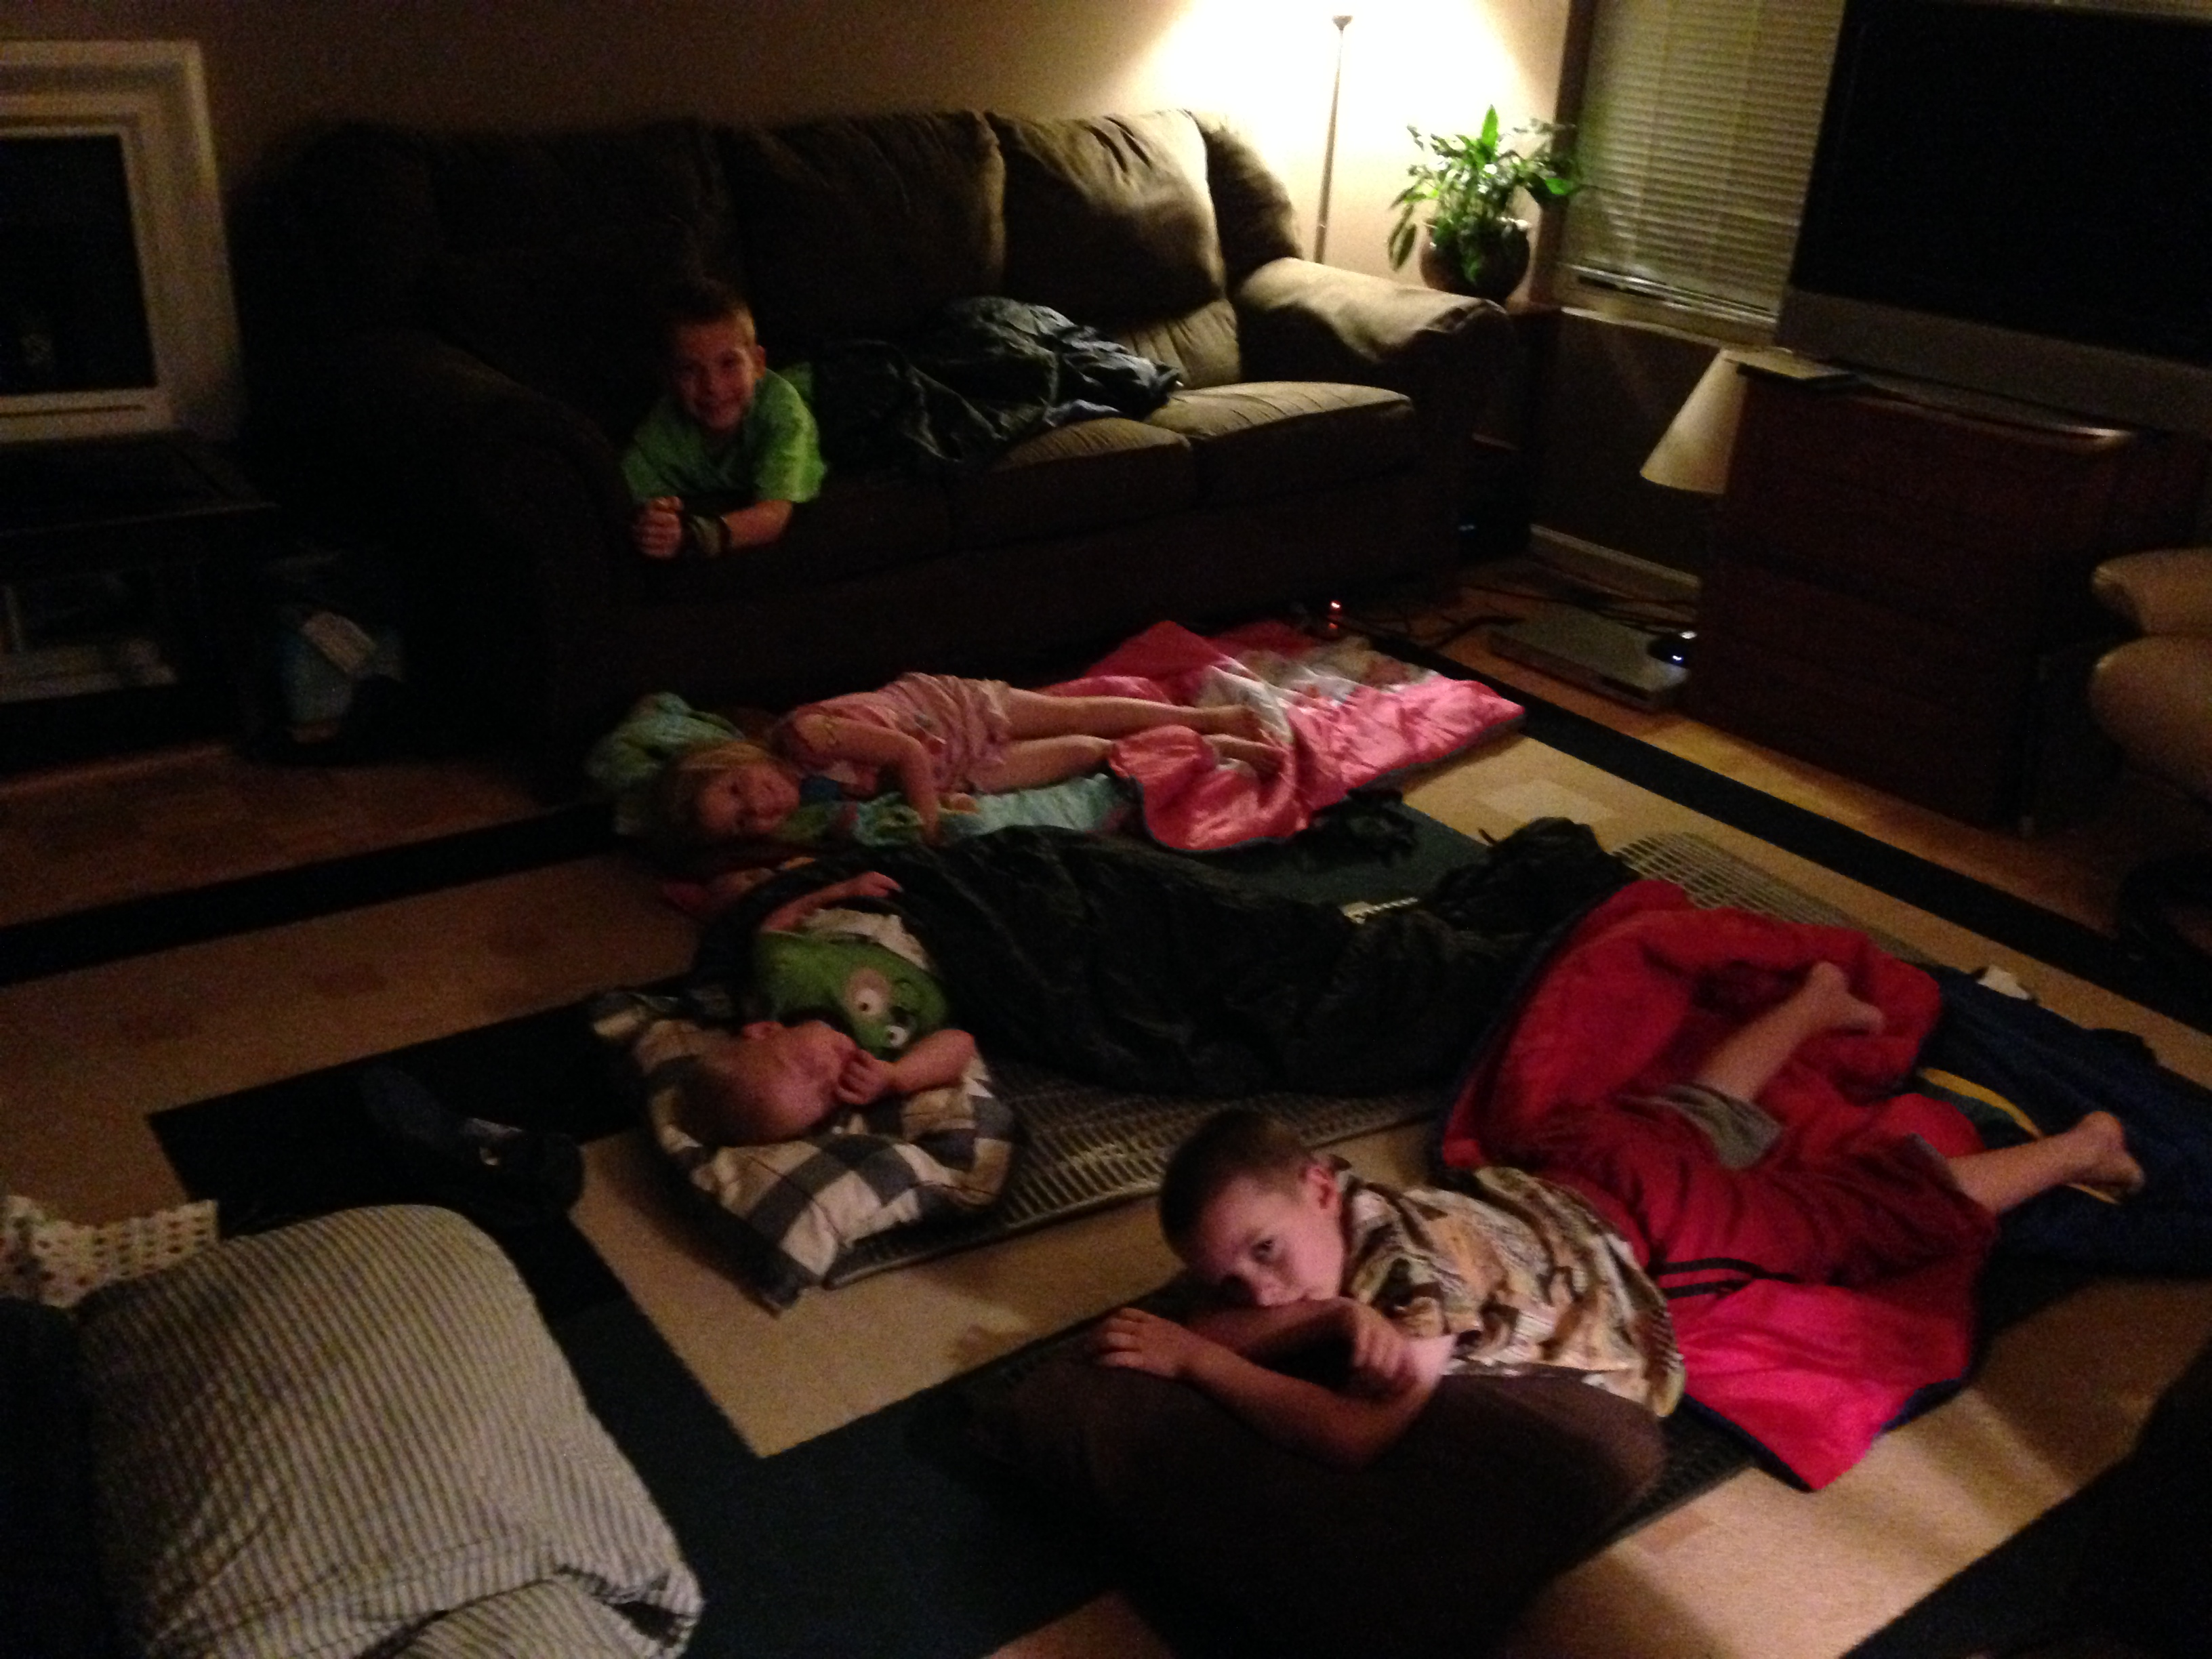 Family slumber party in the living room.